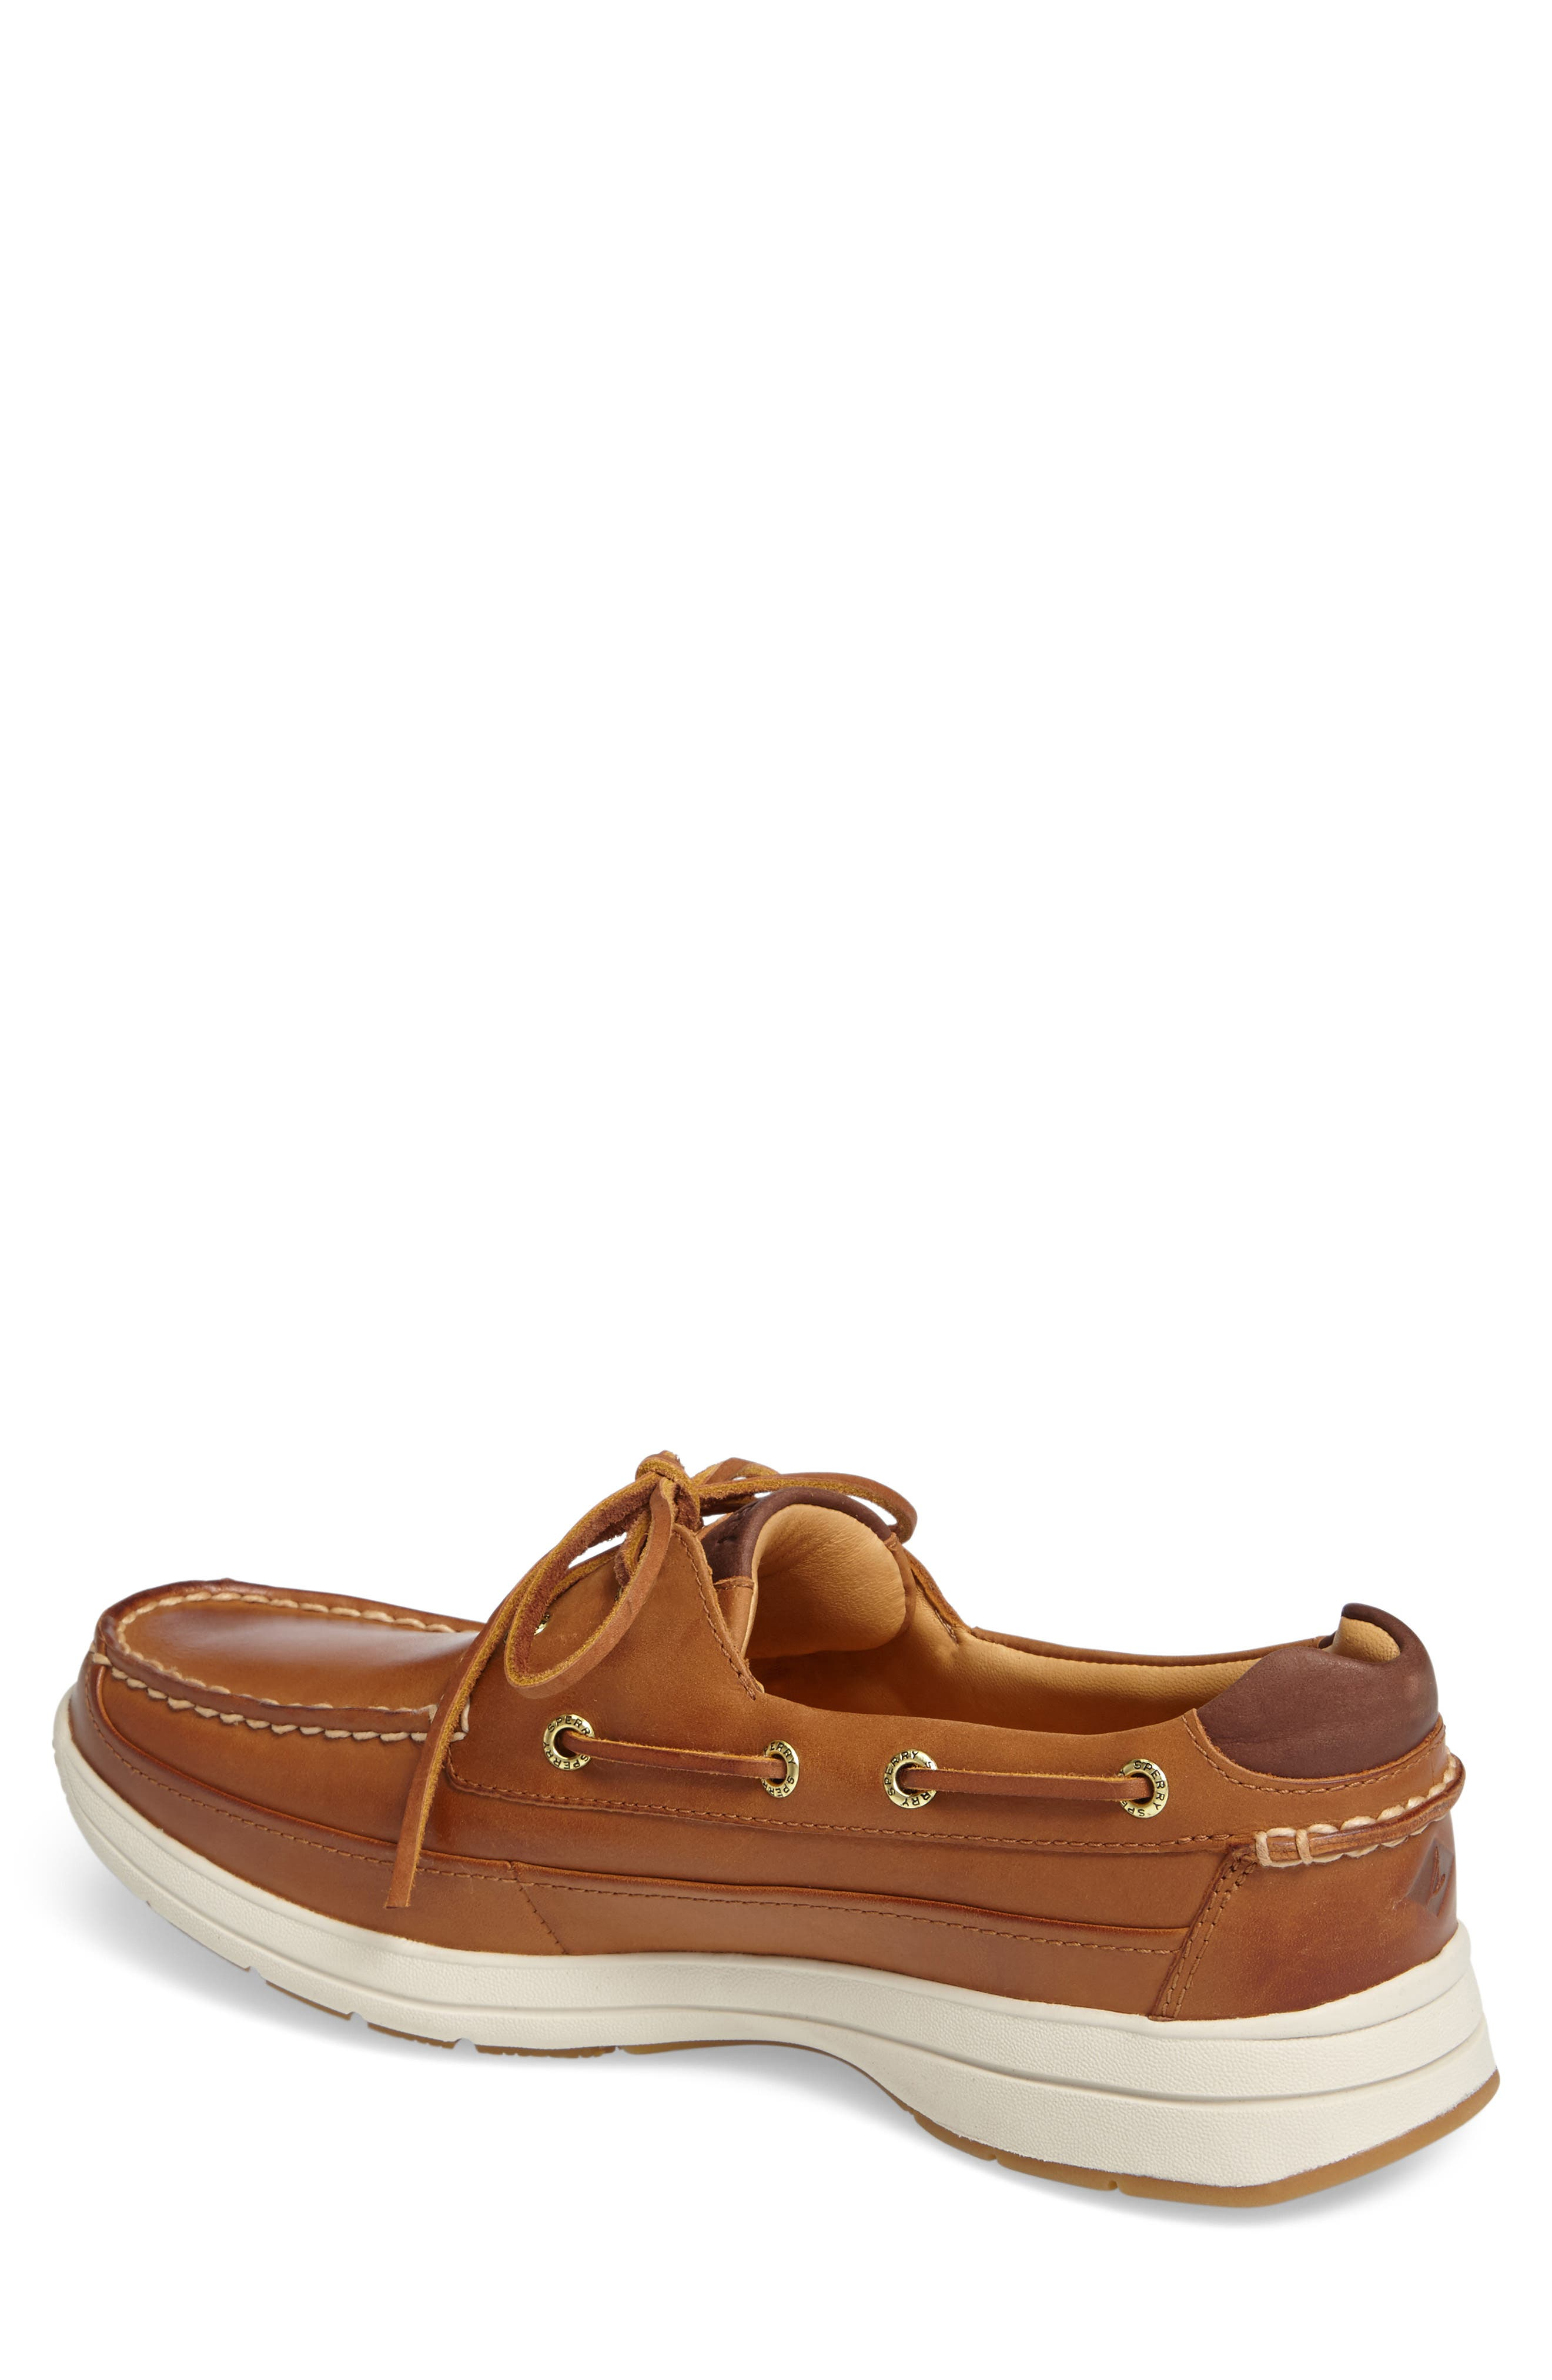 ,                             Gold Cup Ultralite Boat Shoe,                             Alternate thumbnail 2, color,                             200